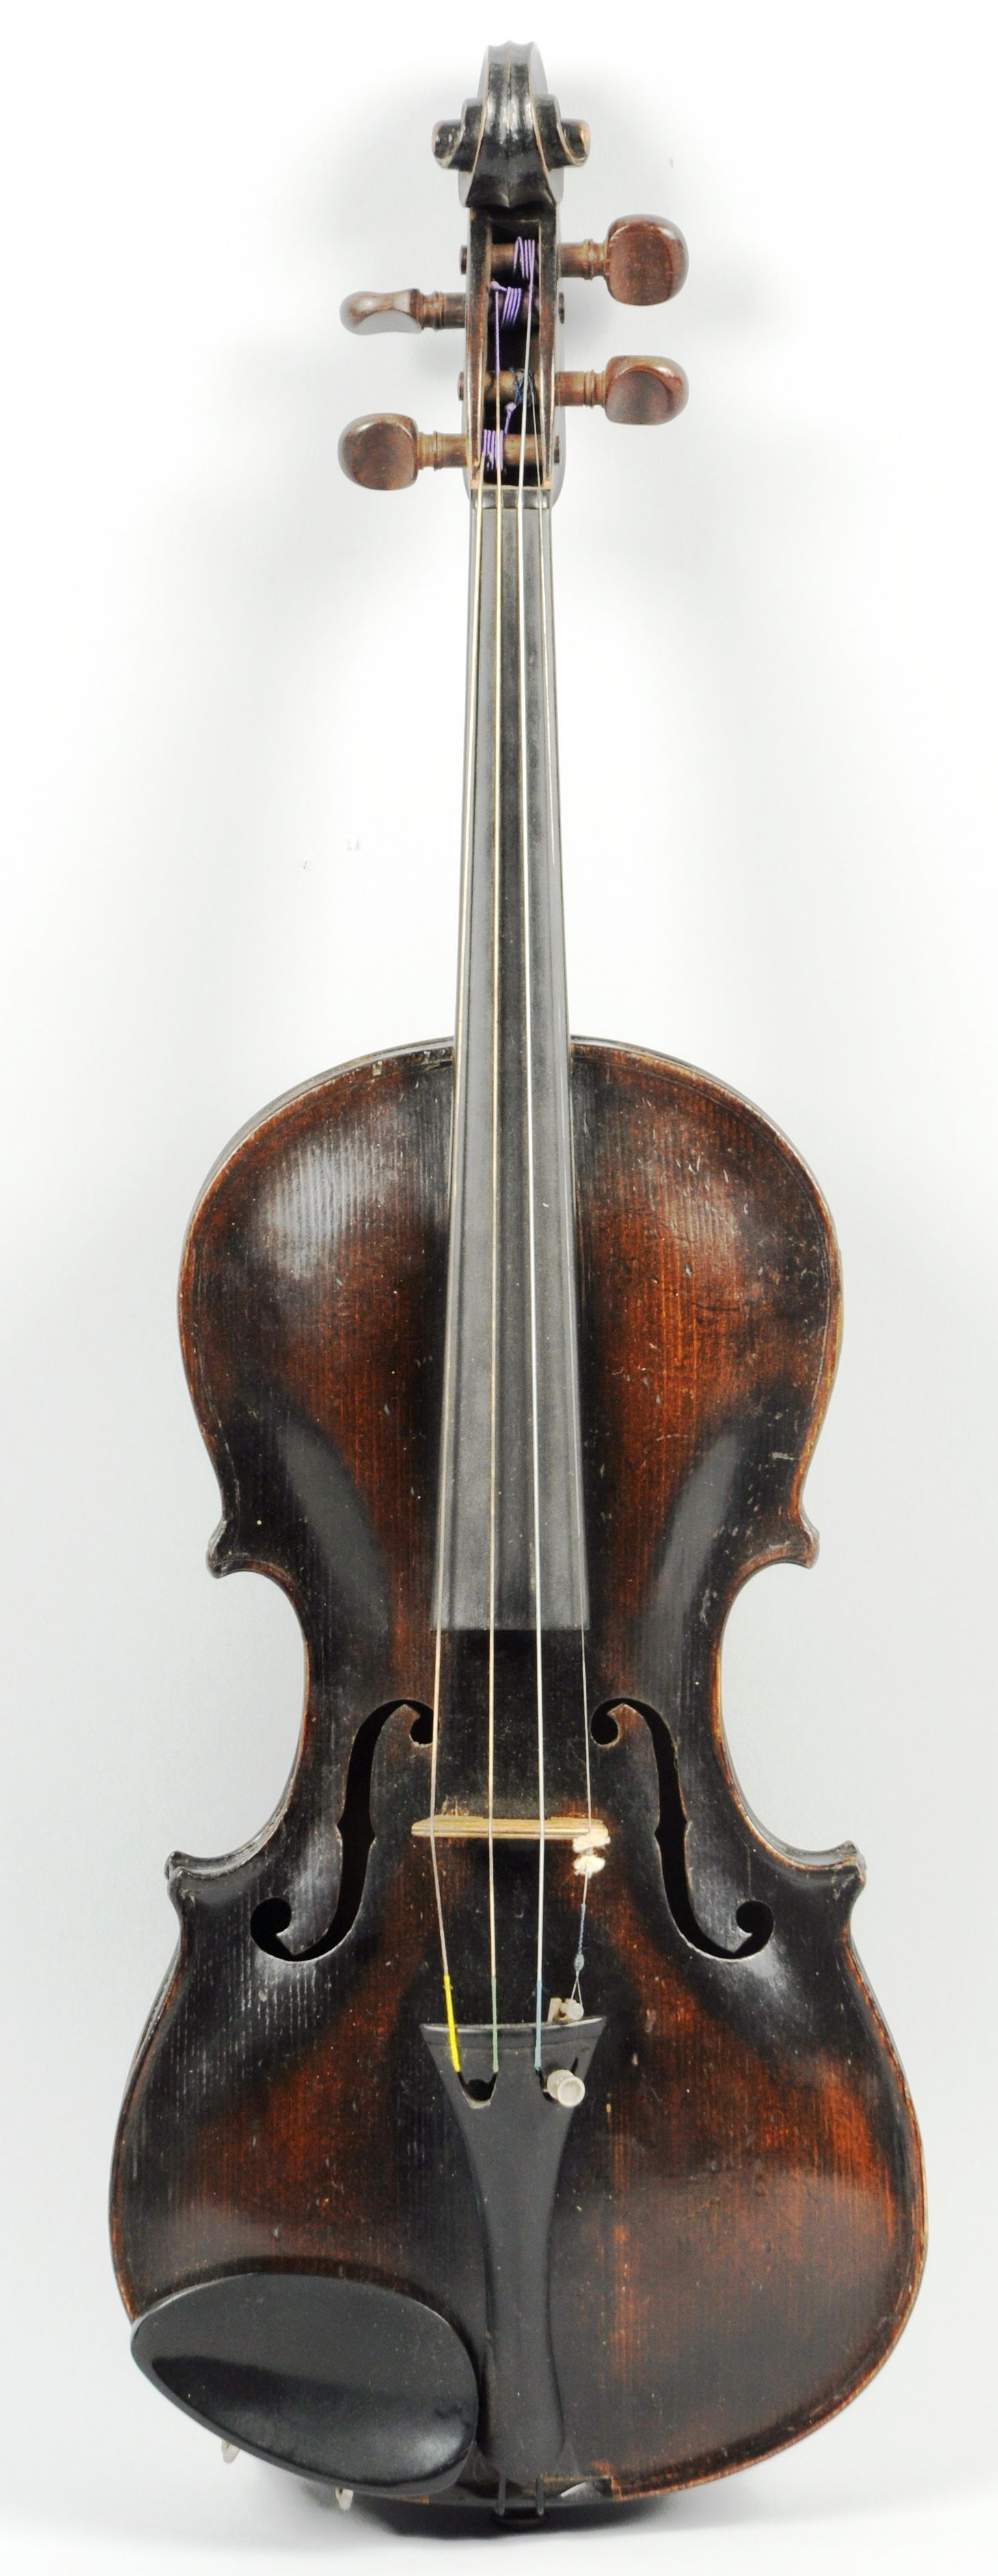 jacobus steiner model violin full size and in playing condition